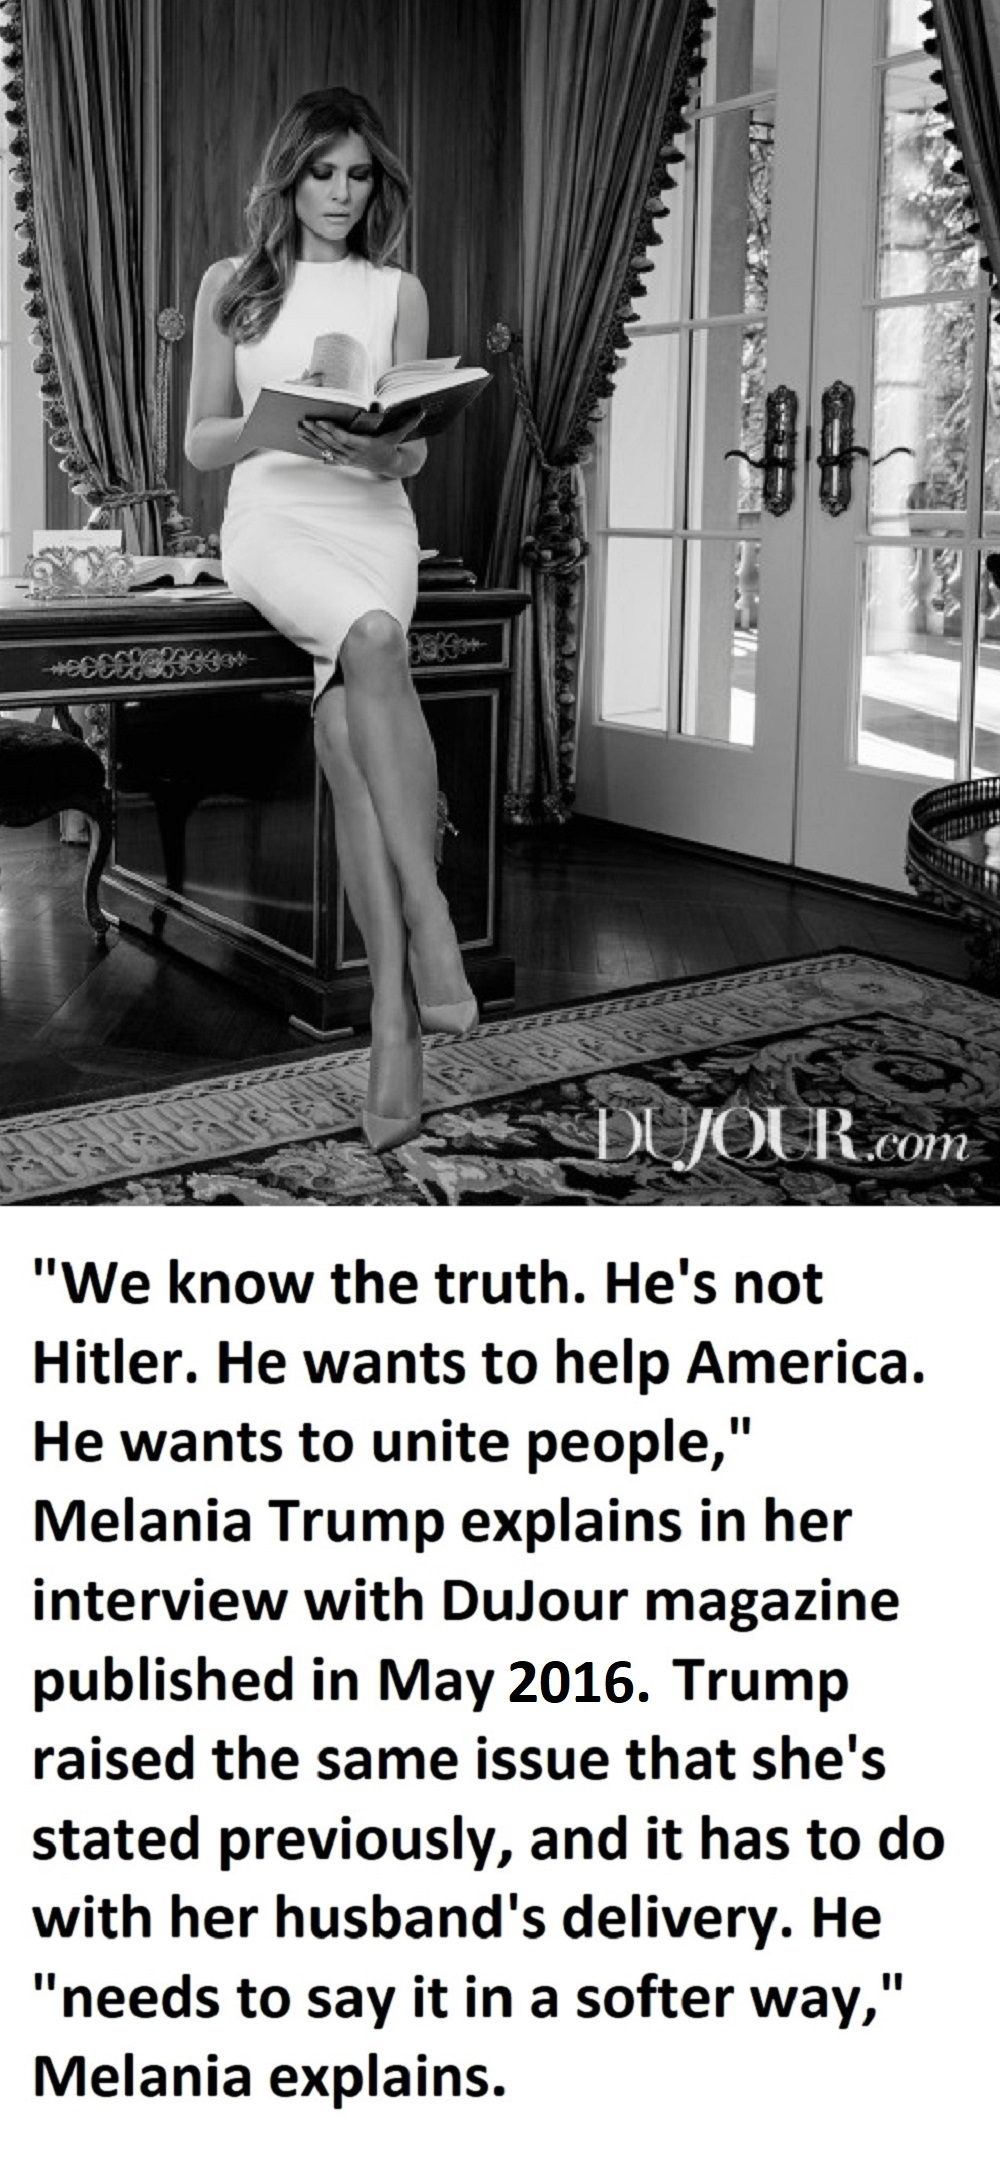 Melania Trump says Donald Trump is not Hitler text.jpg